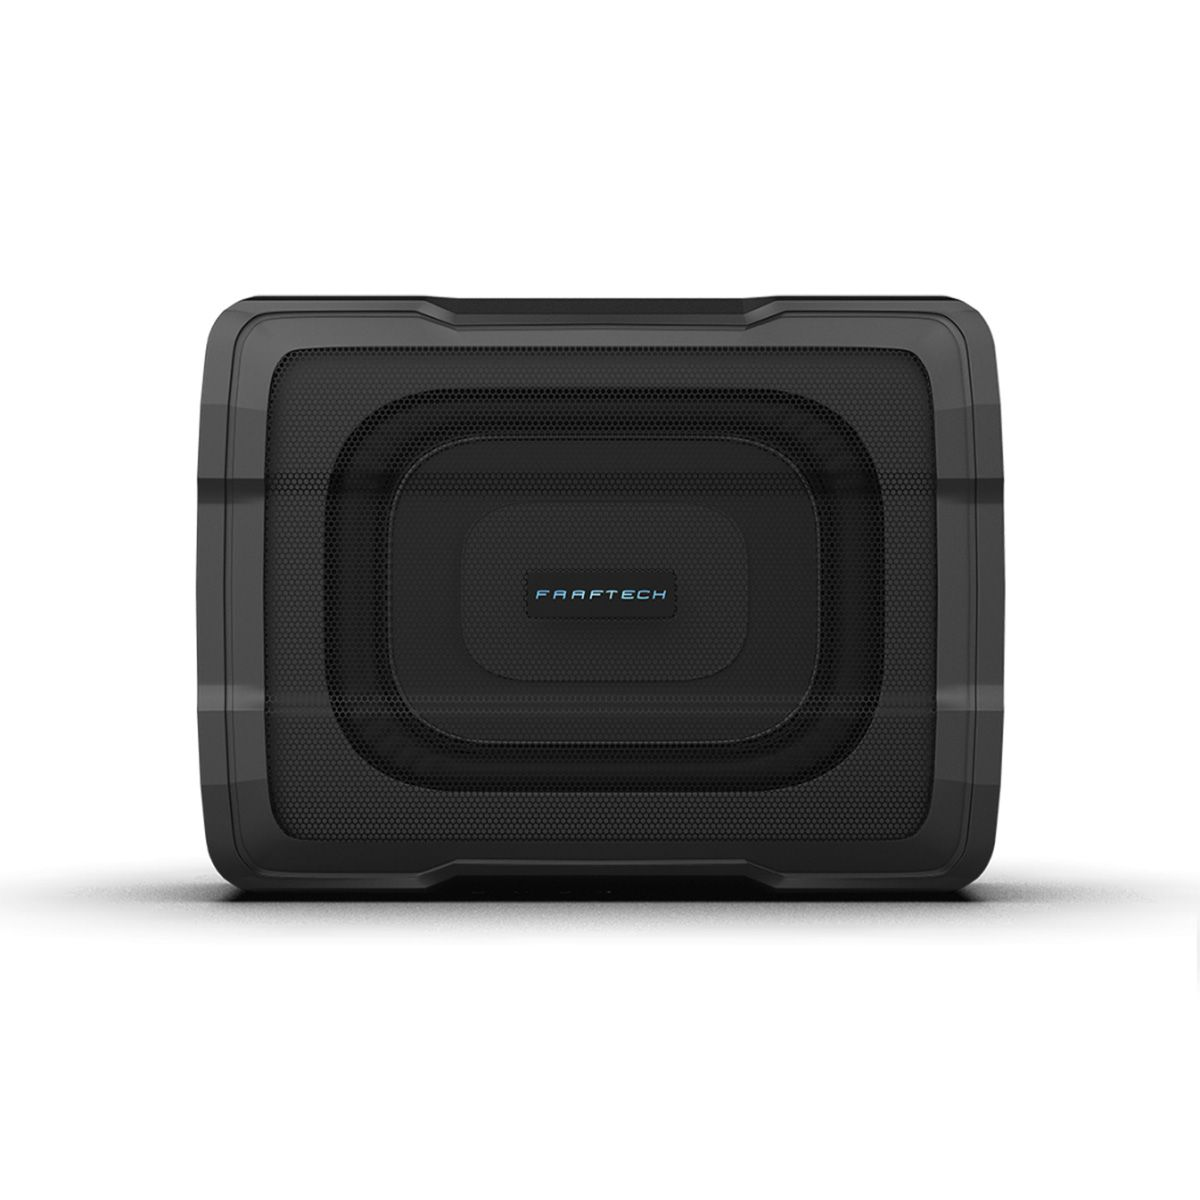 Subwoofer Ativo Plug and Play 100W RMS Chevrolet FT-SW68 GM Faaftech